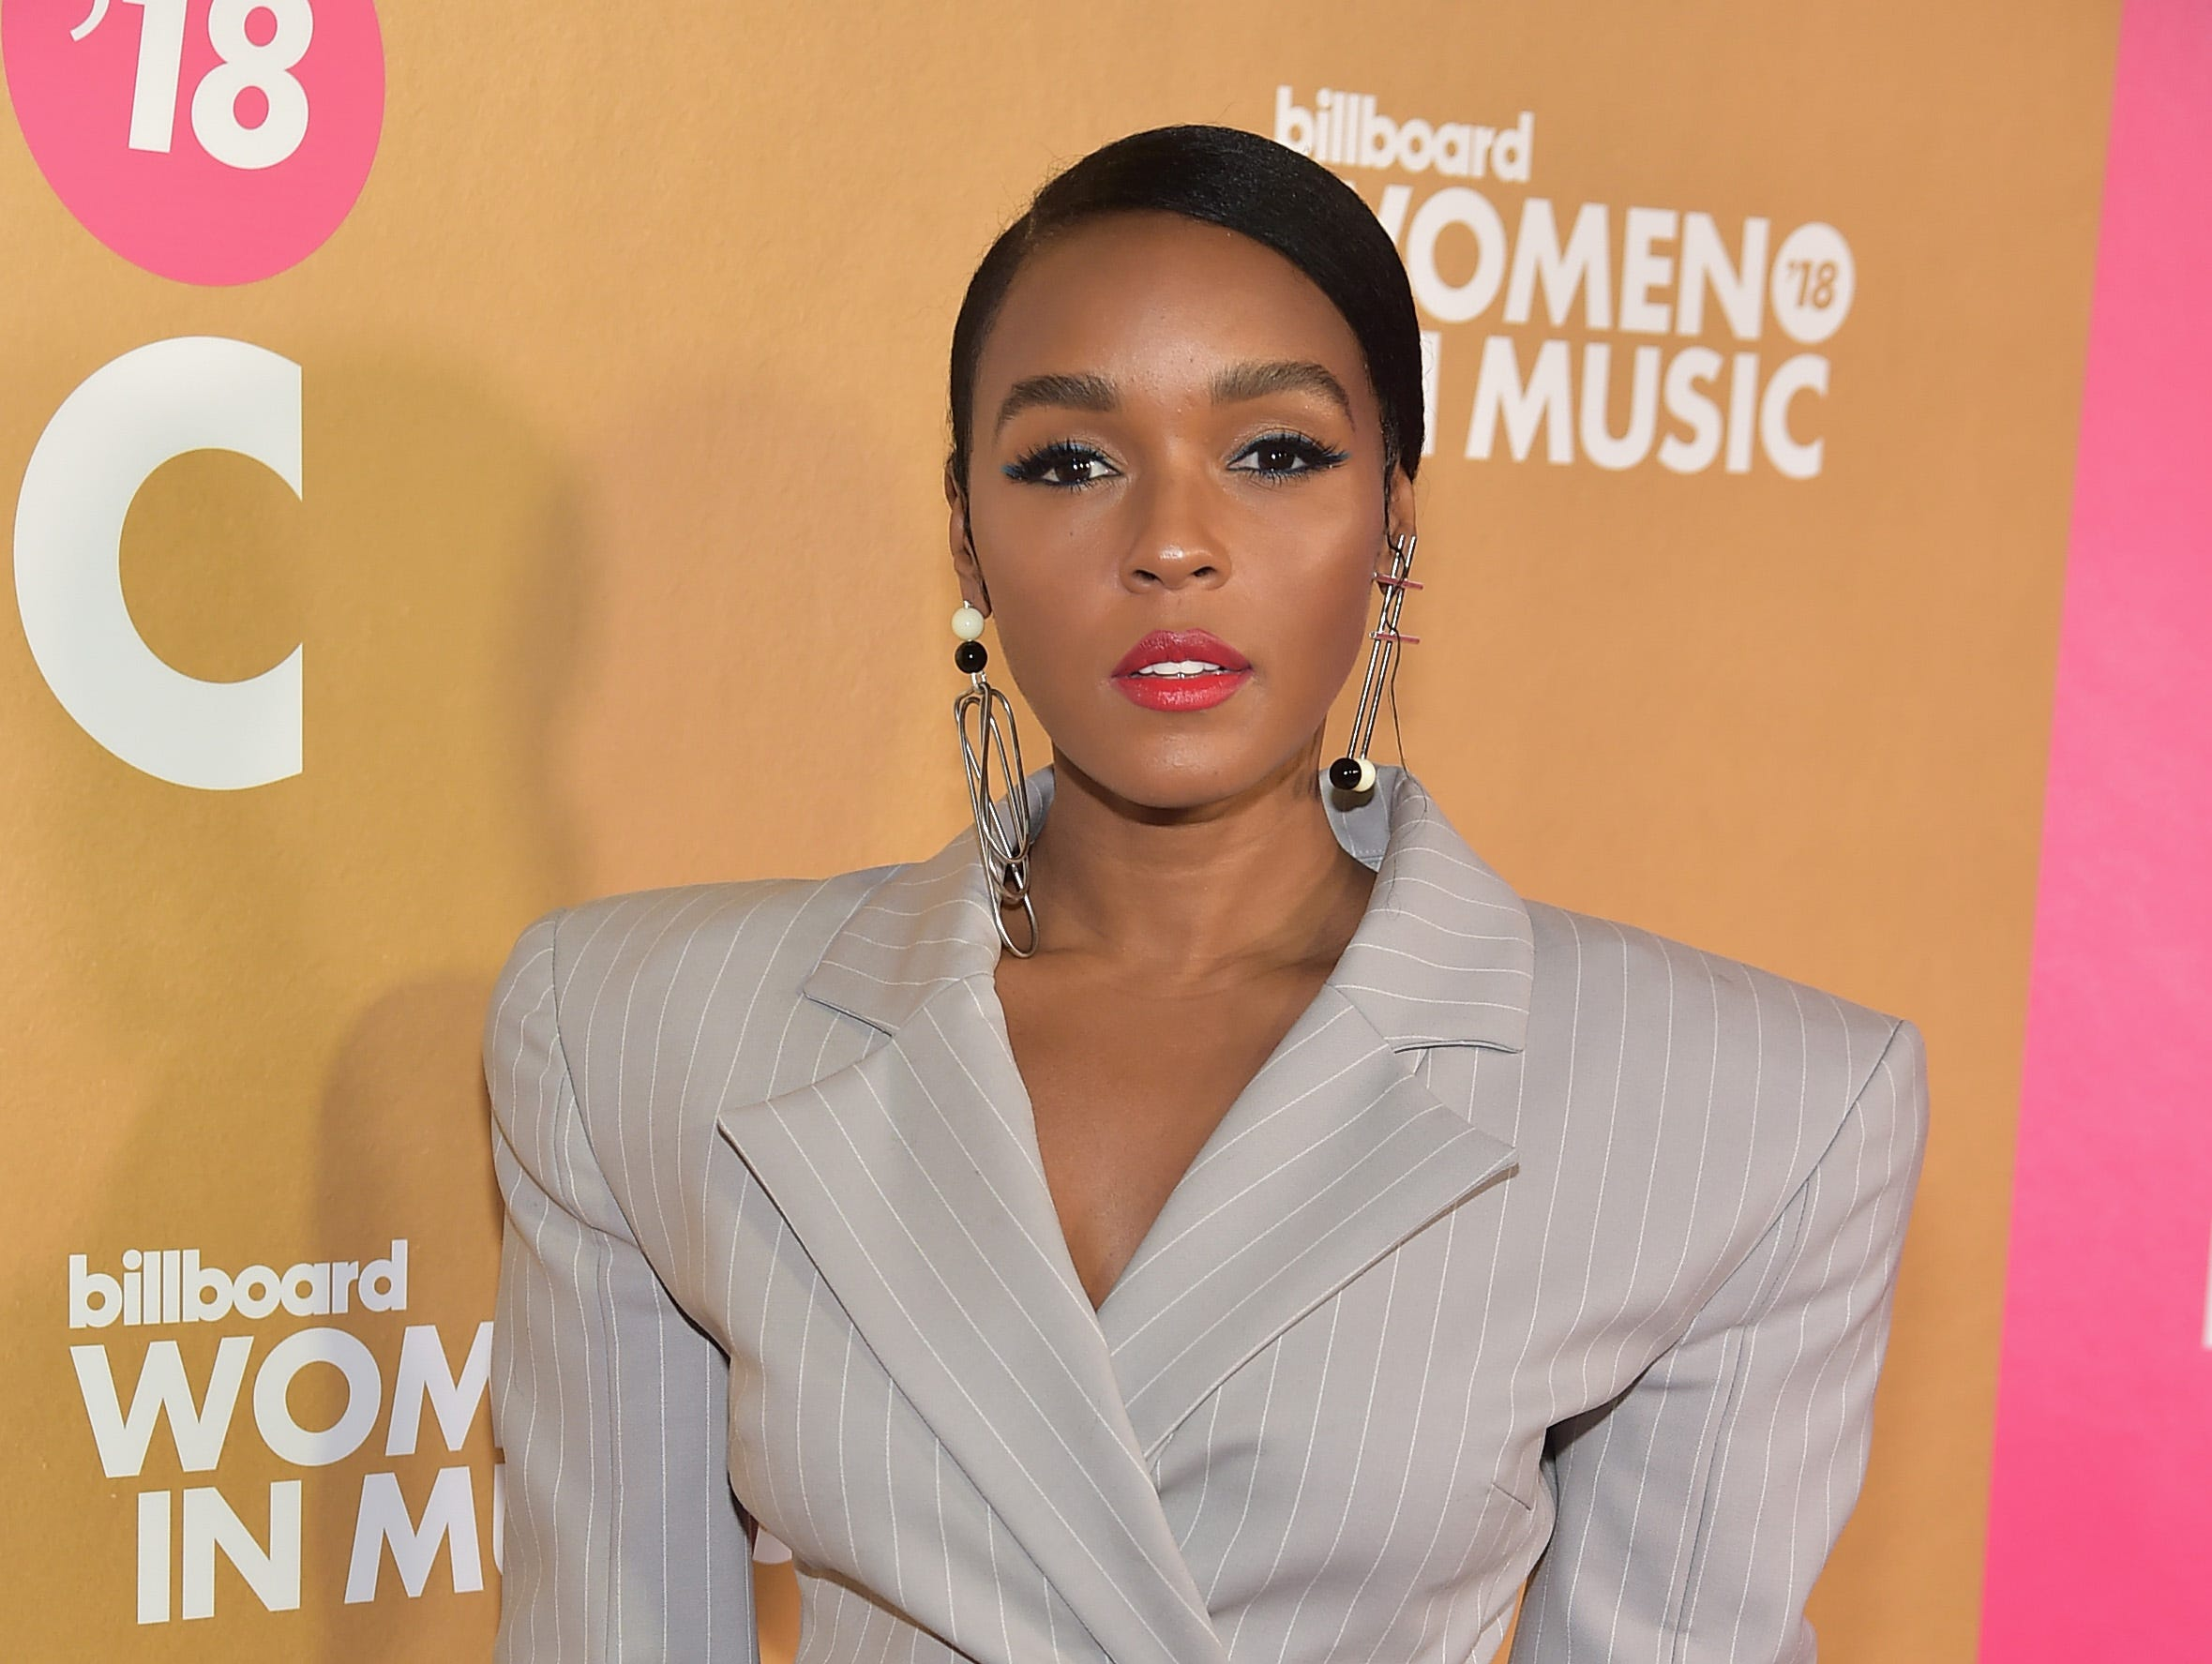 NEW YORK, NEW YORK - DECEMBER 06: Janelle Monáe attends Billboard's 13th Annual Women In Music Event at Pier 36 on December 06, 2018 in New York City. (Photo by Theo Wargo/Getty Images) ORG XMIT: 775259767 ORIG FILE ID: 1078270184